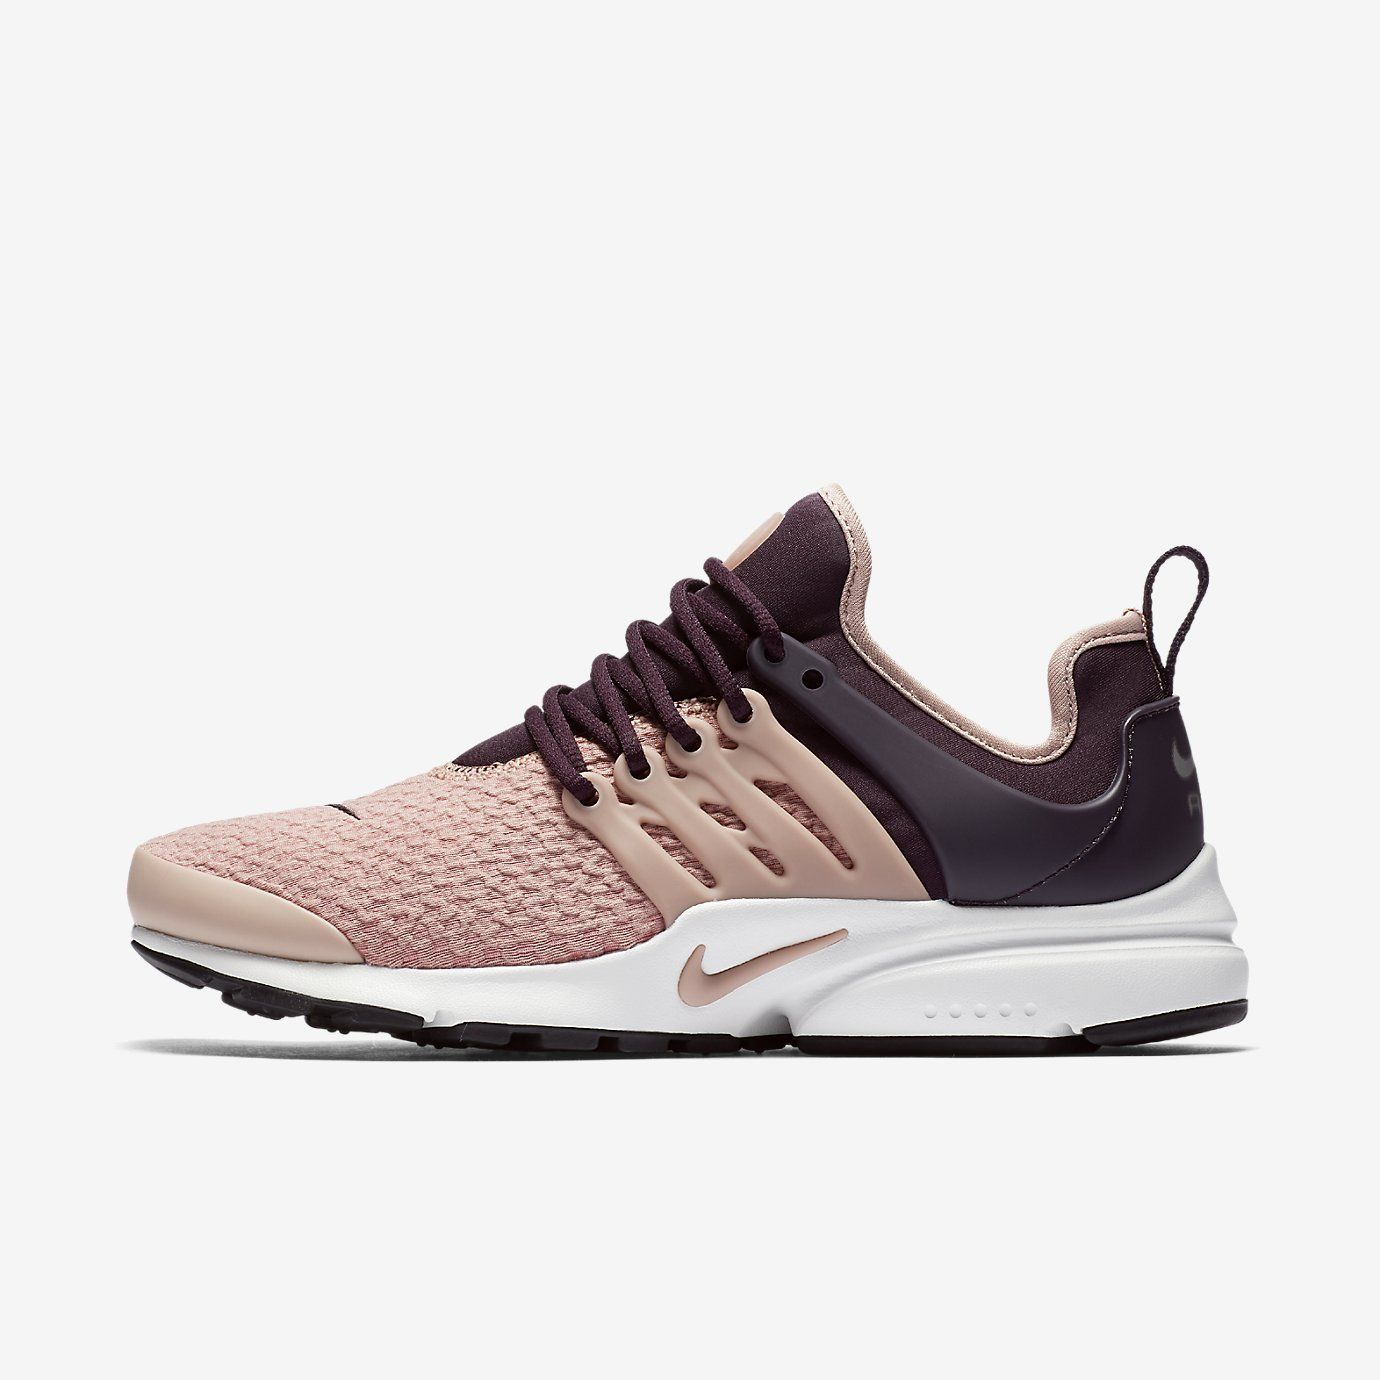 ee31586d480a Nike Air Presto- port wine summit white black particle pink